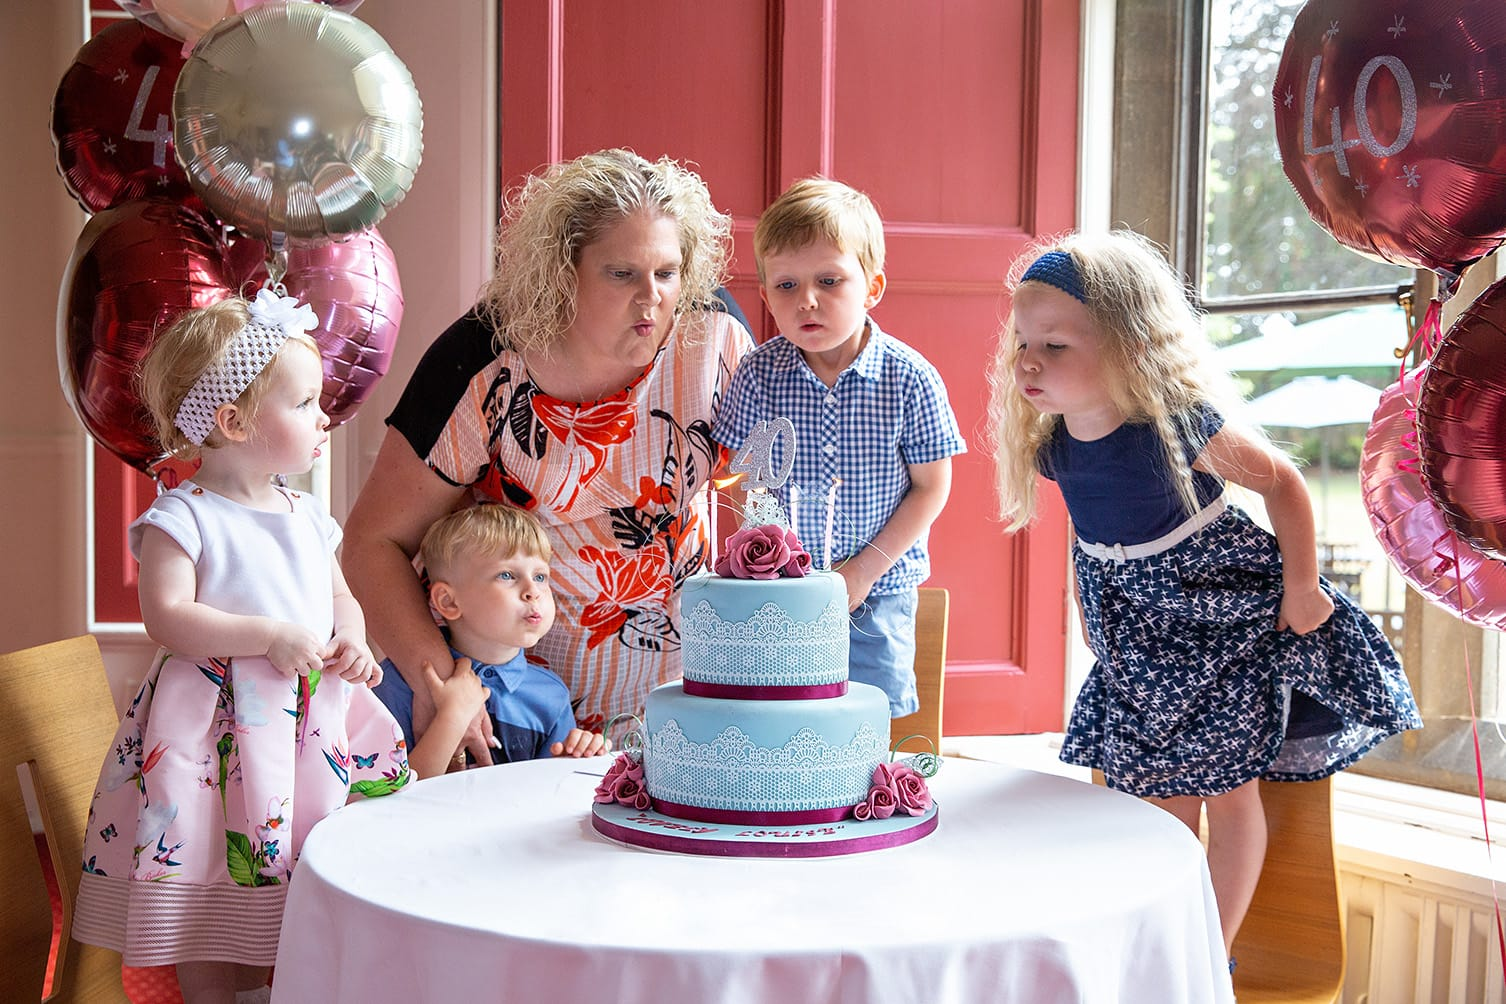 Louise Brwon celebrates her 40th birthday at Bourn Hall